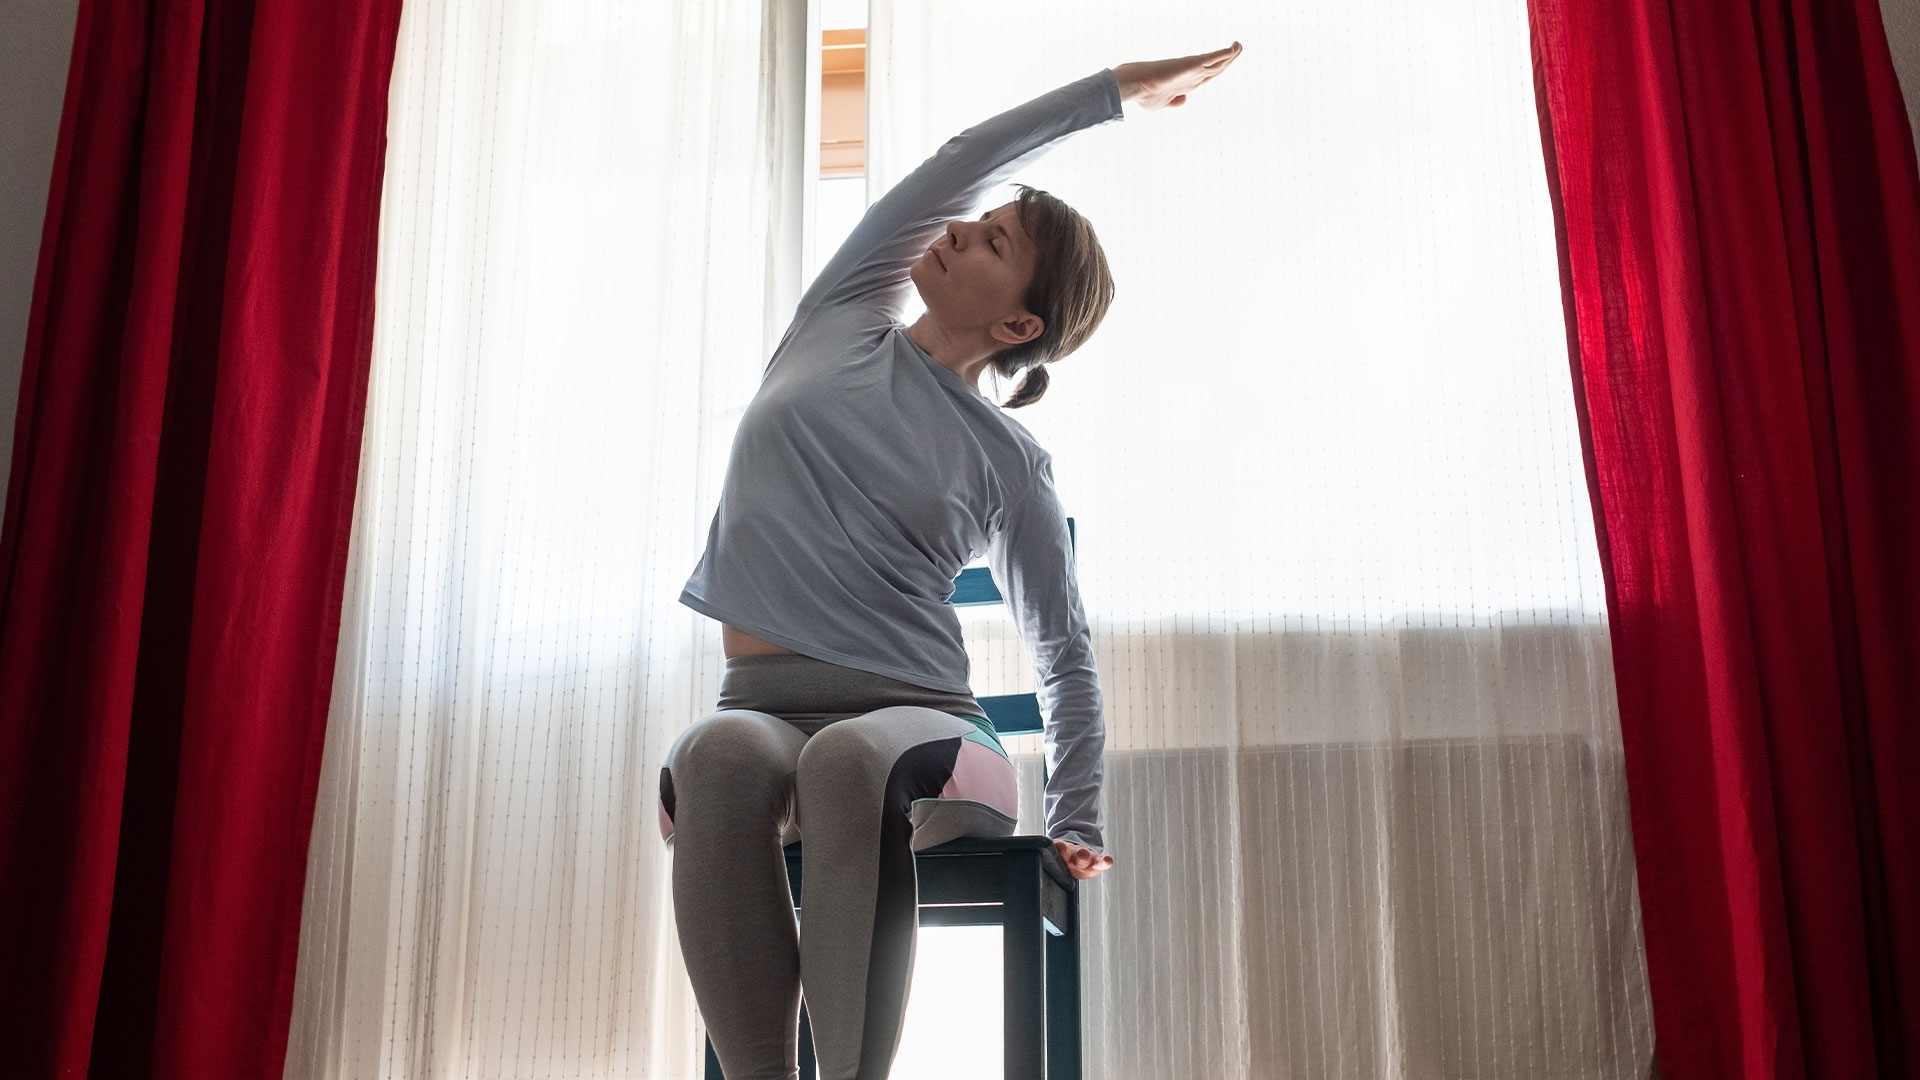 Woman in grey workout clothes stretches her side while seated in a chair.